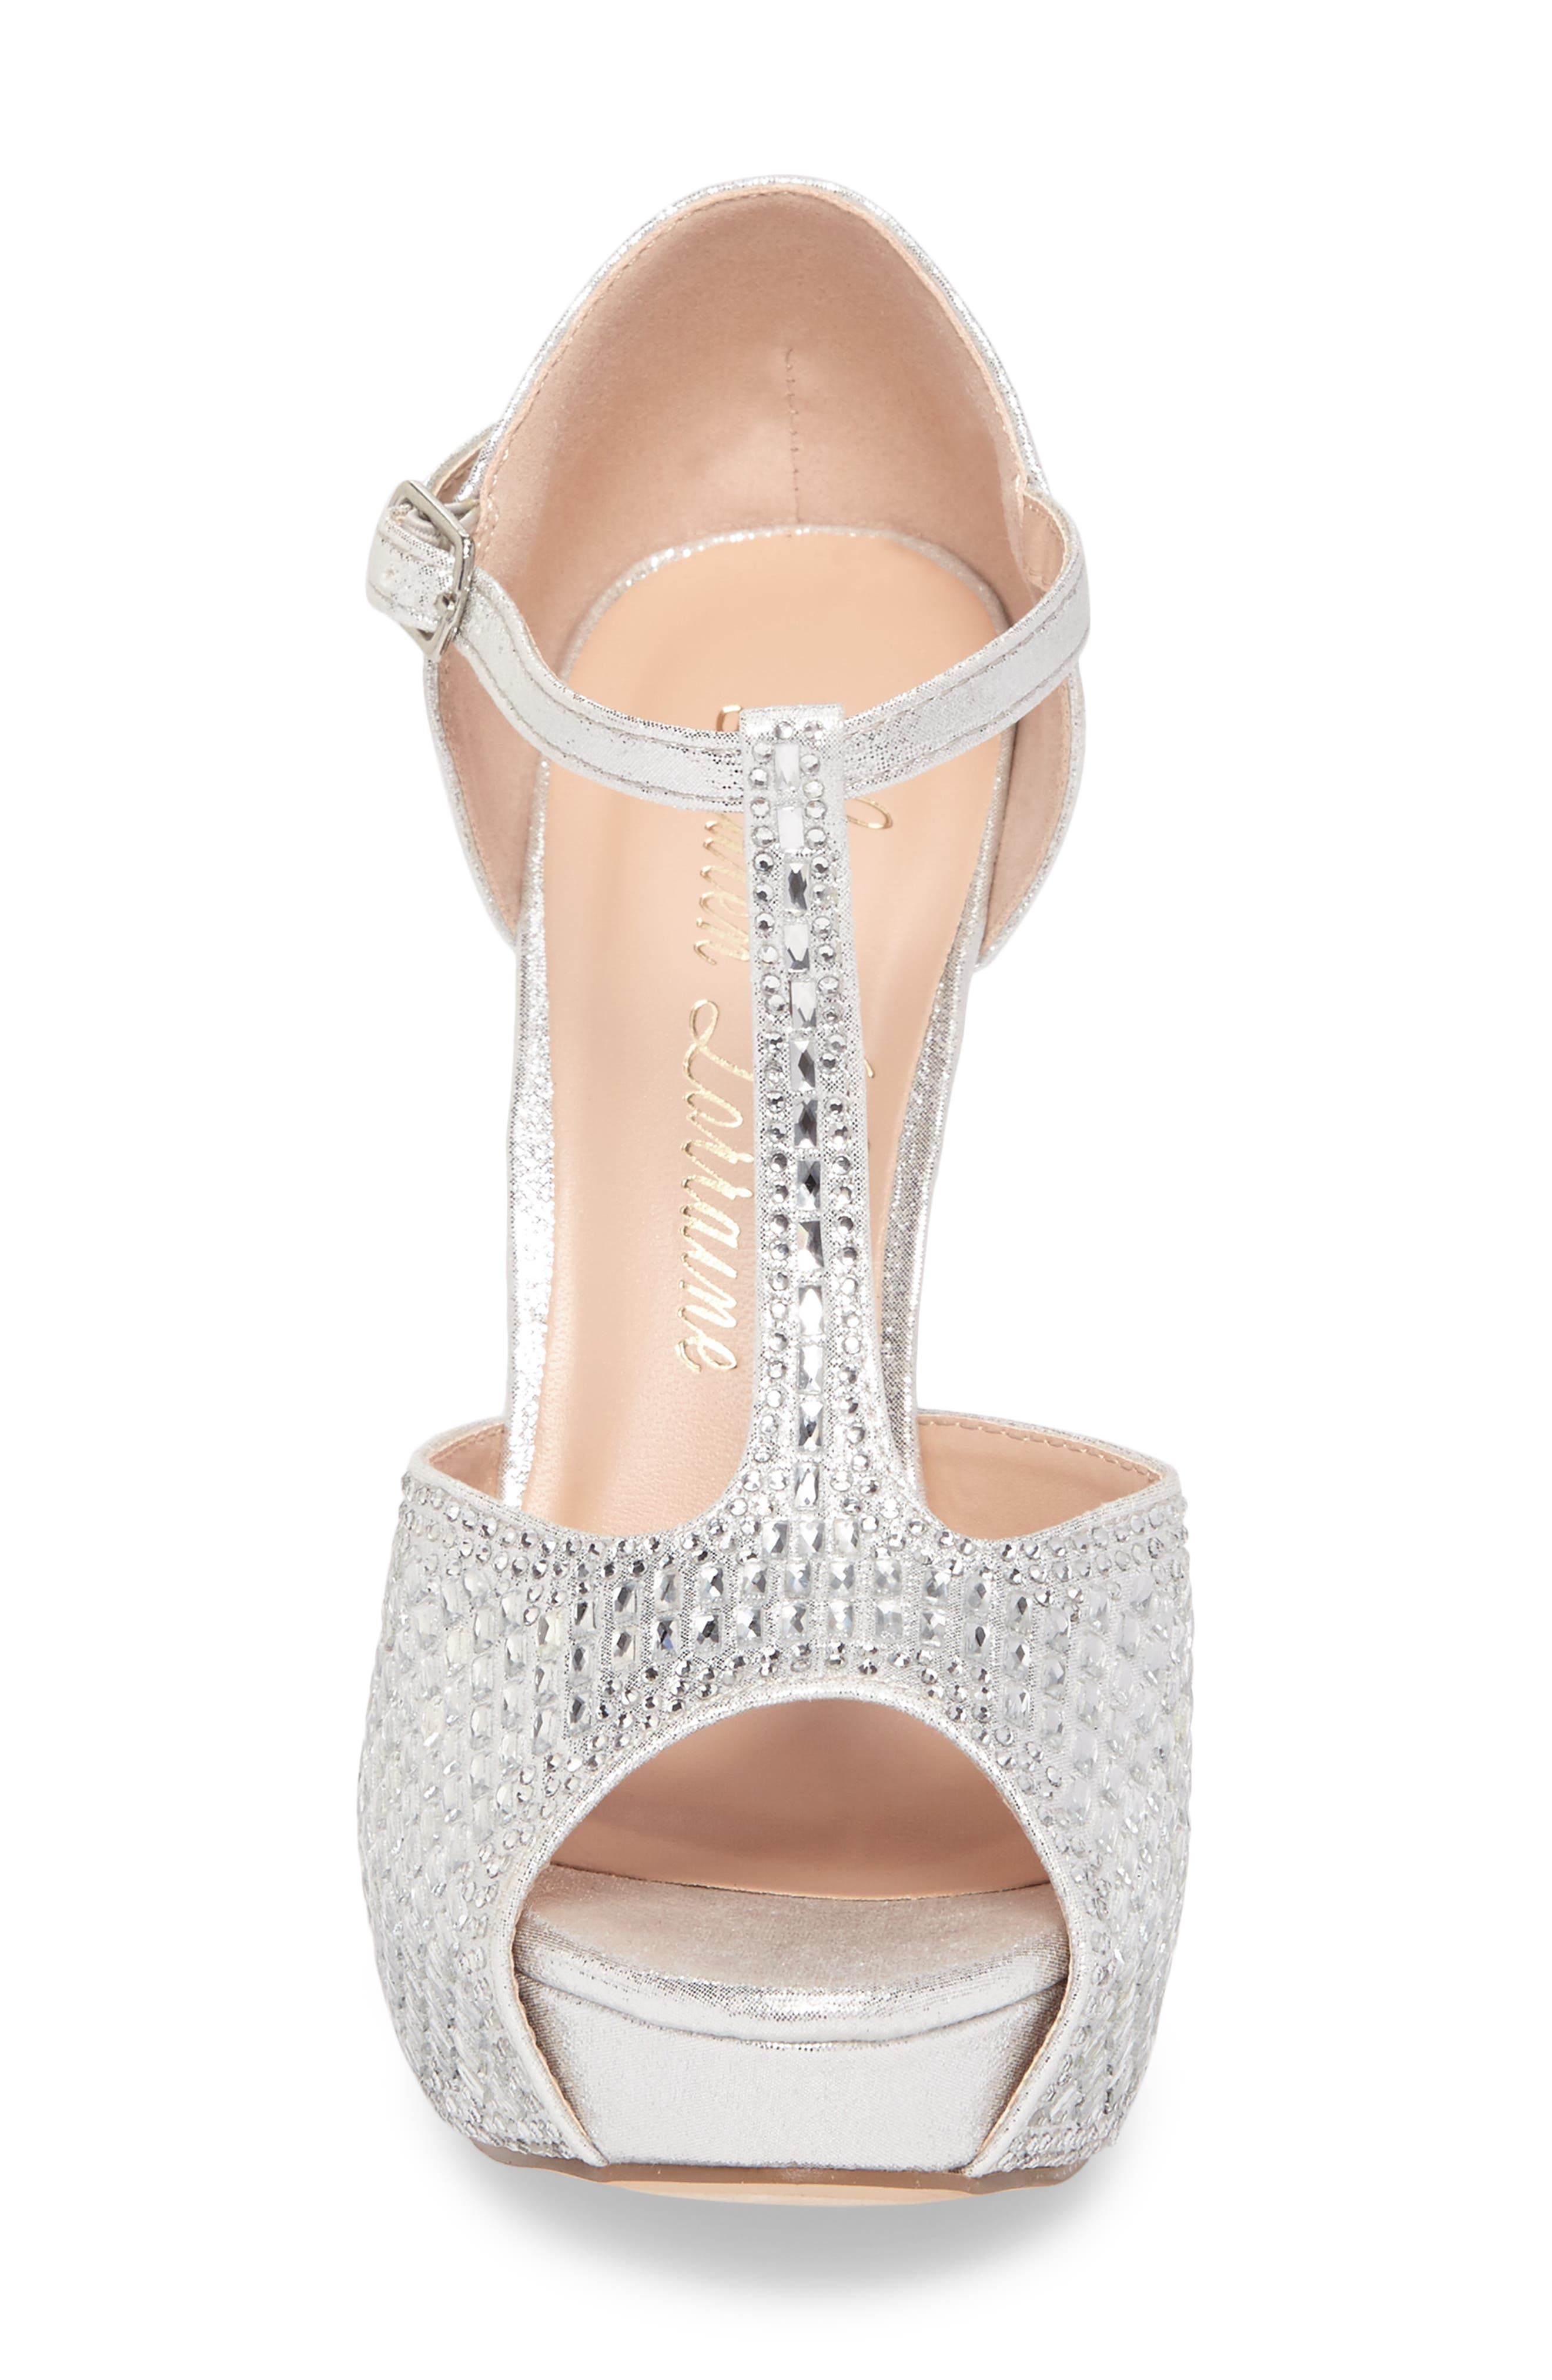 Vivian 4 Crystal Embellished Sandal,                             Alternate thumbnail 11, color,